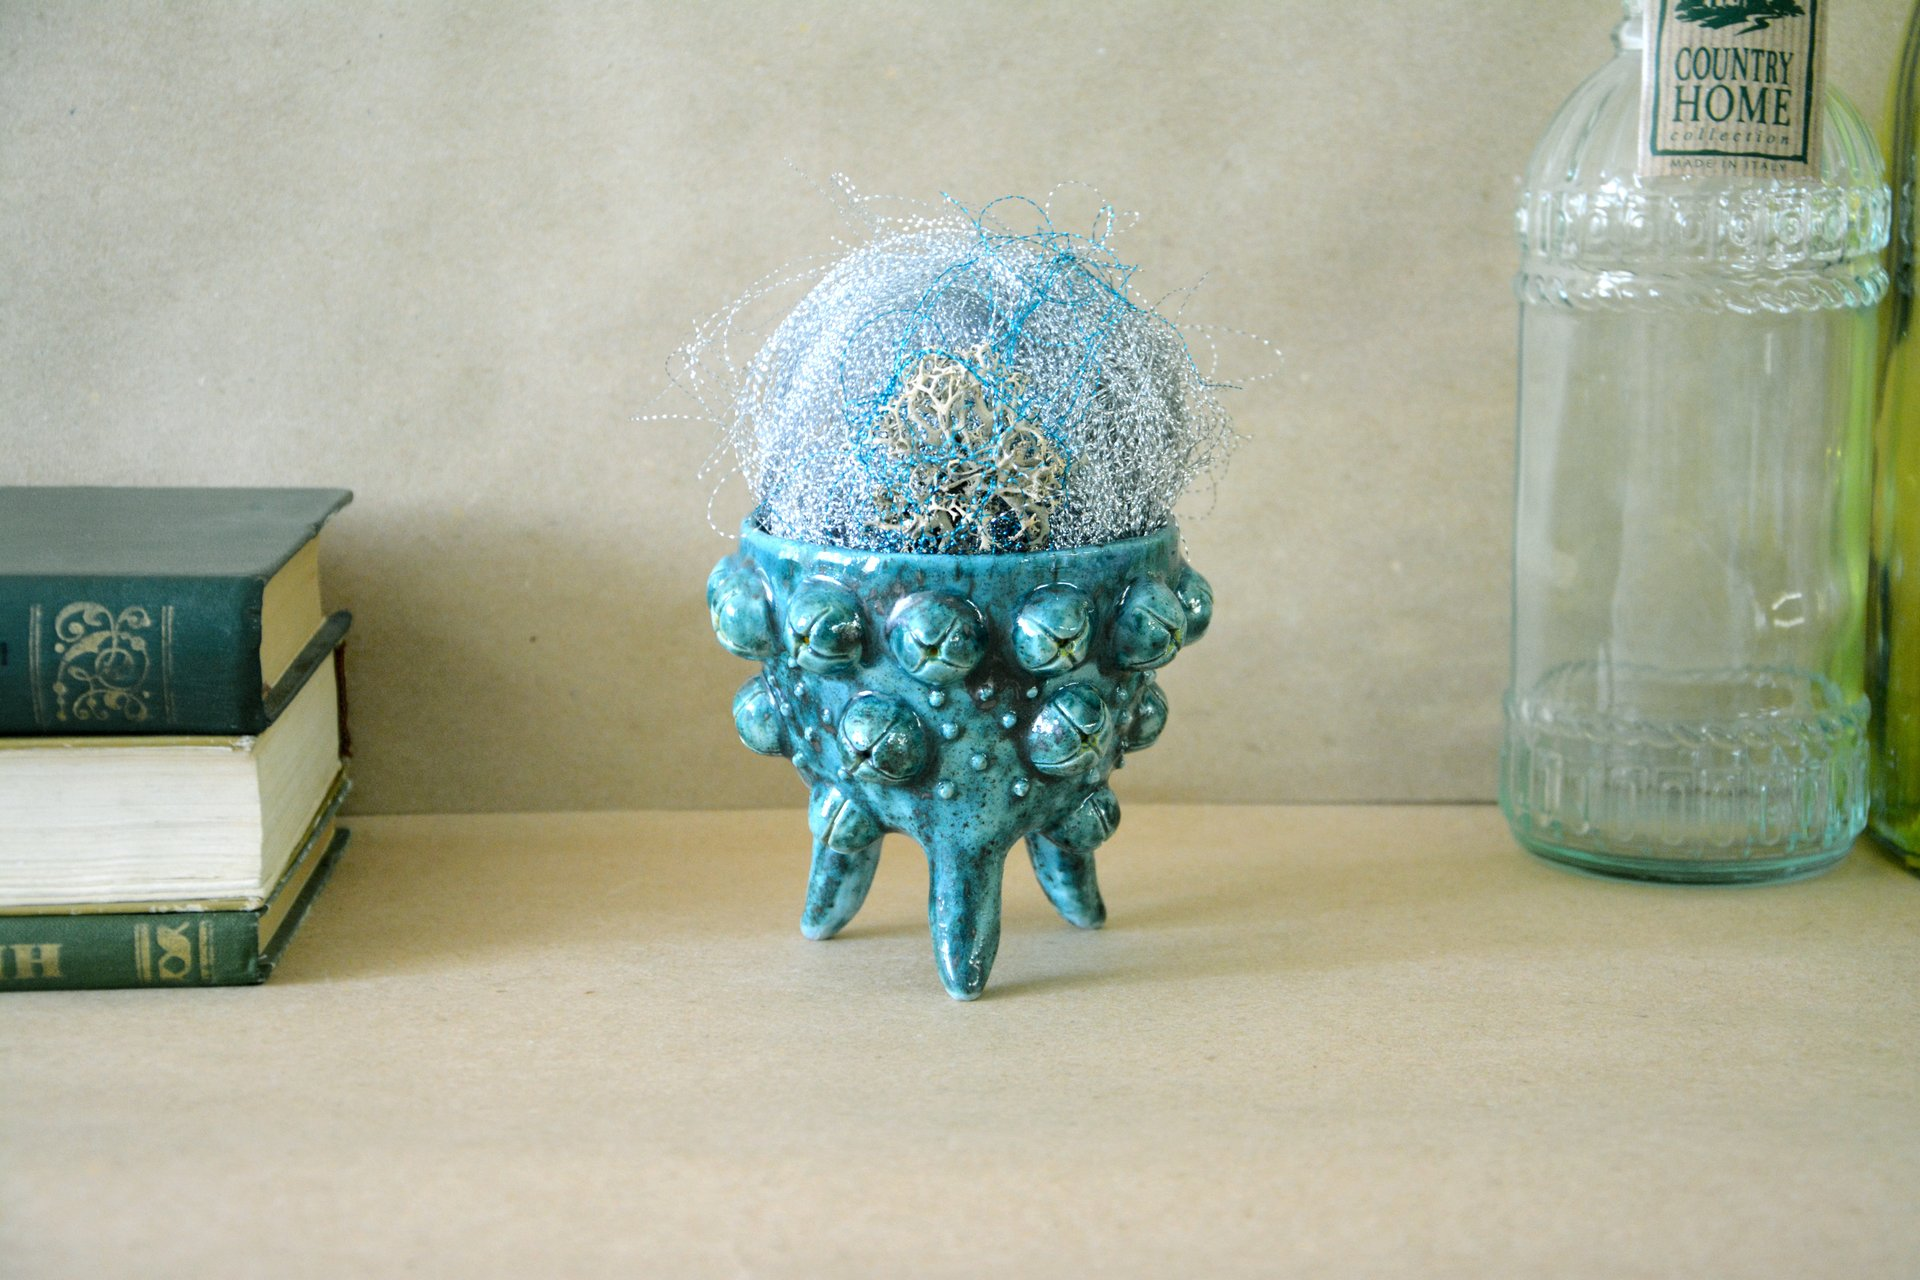 Ceramic cachepot for cactus on the legs Turquoise flicker, diameter - 10 cm, height - 9.5 cm, photo 2 of 4.